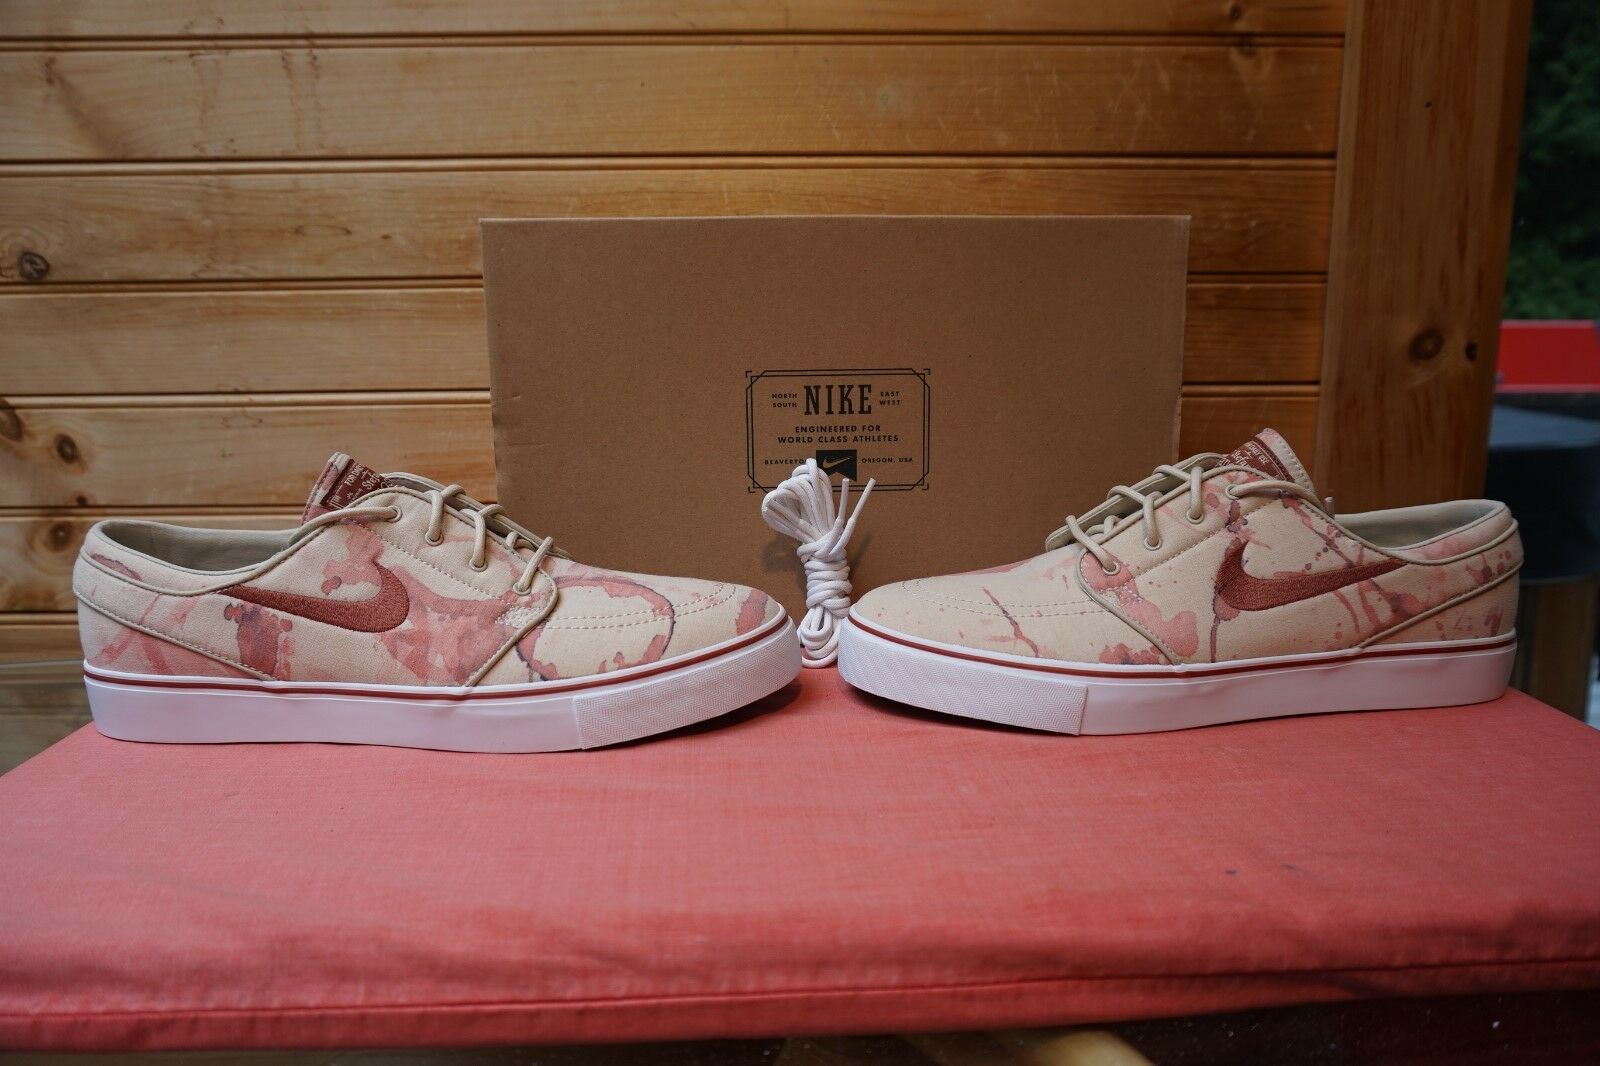 2018 Nike Zoom Stefan Janoski SB Blood Splatter Sz 10.5 Price reduction 333824-102 The most popular shoes for men and women